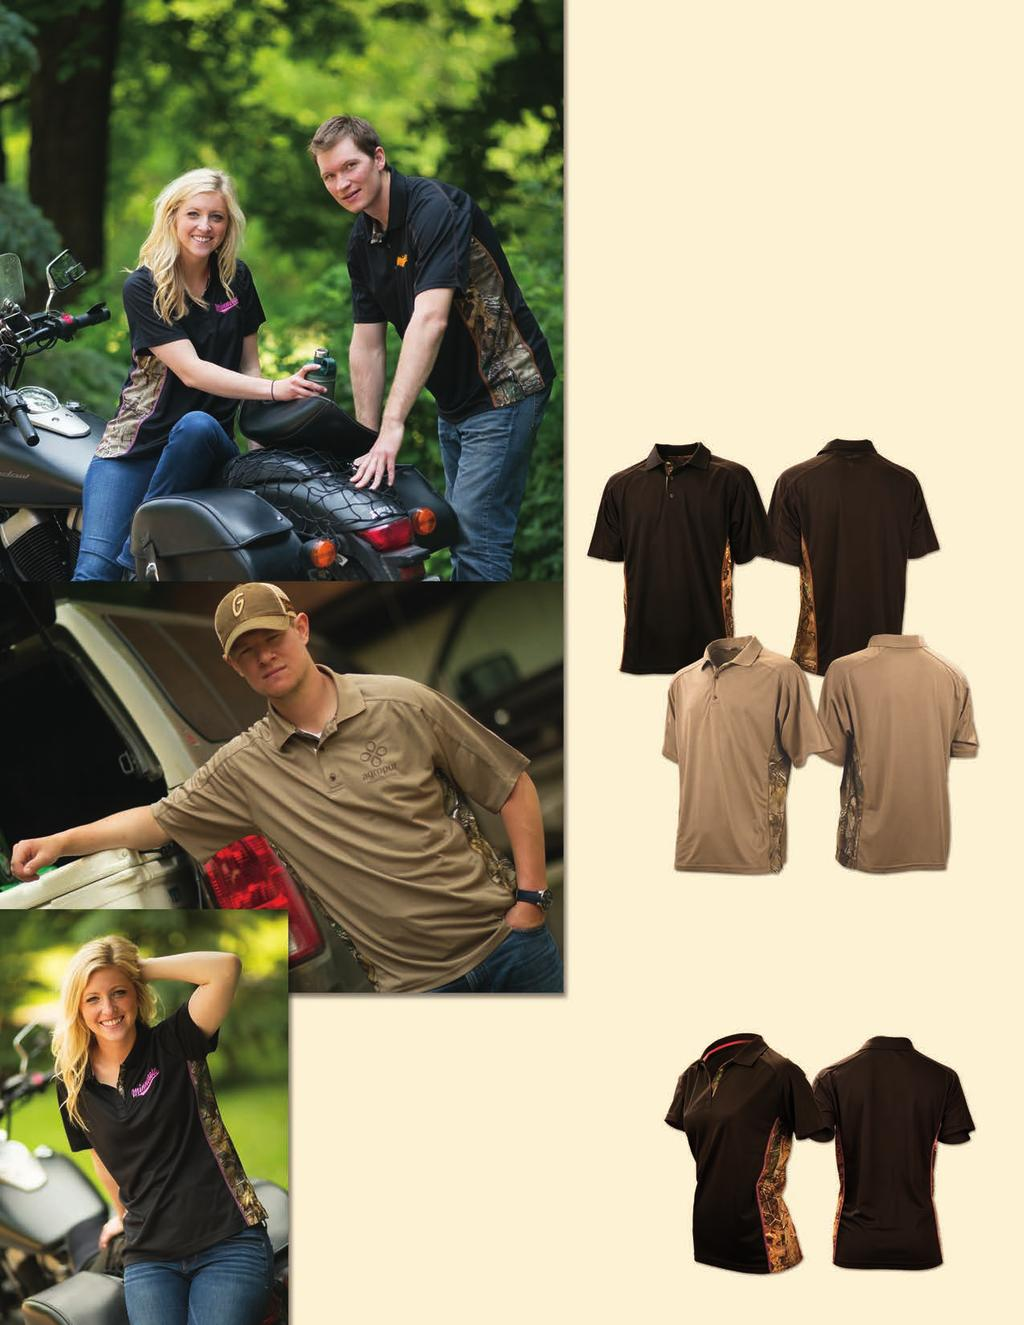 WILDERNESS POLO SHIRT Short-Sleeve Performance Polo Men s Wilderness Polo Shirt Summertime and the outdoors go hand and hand!